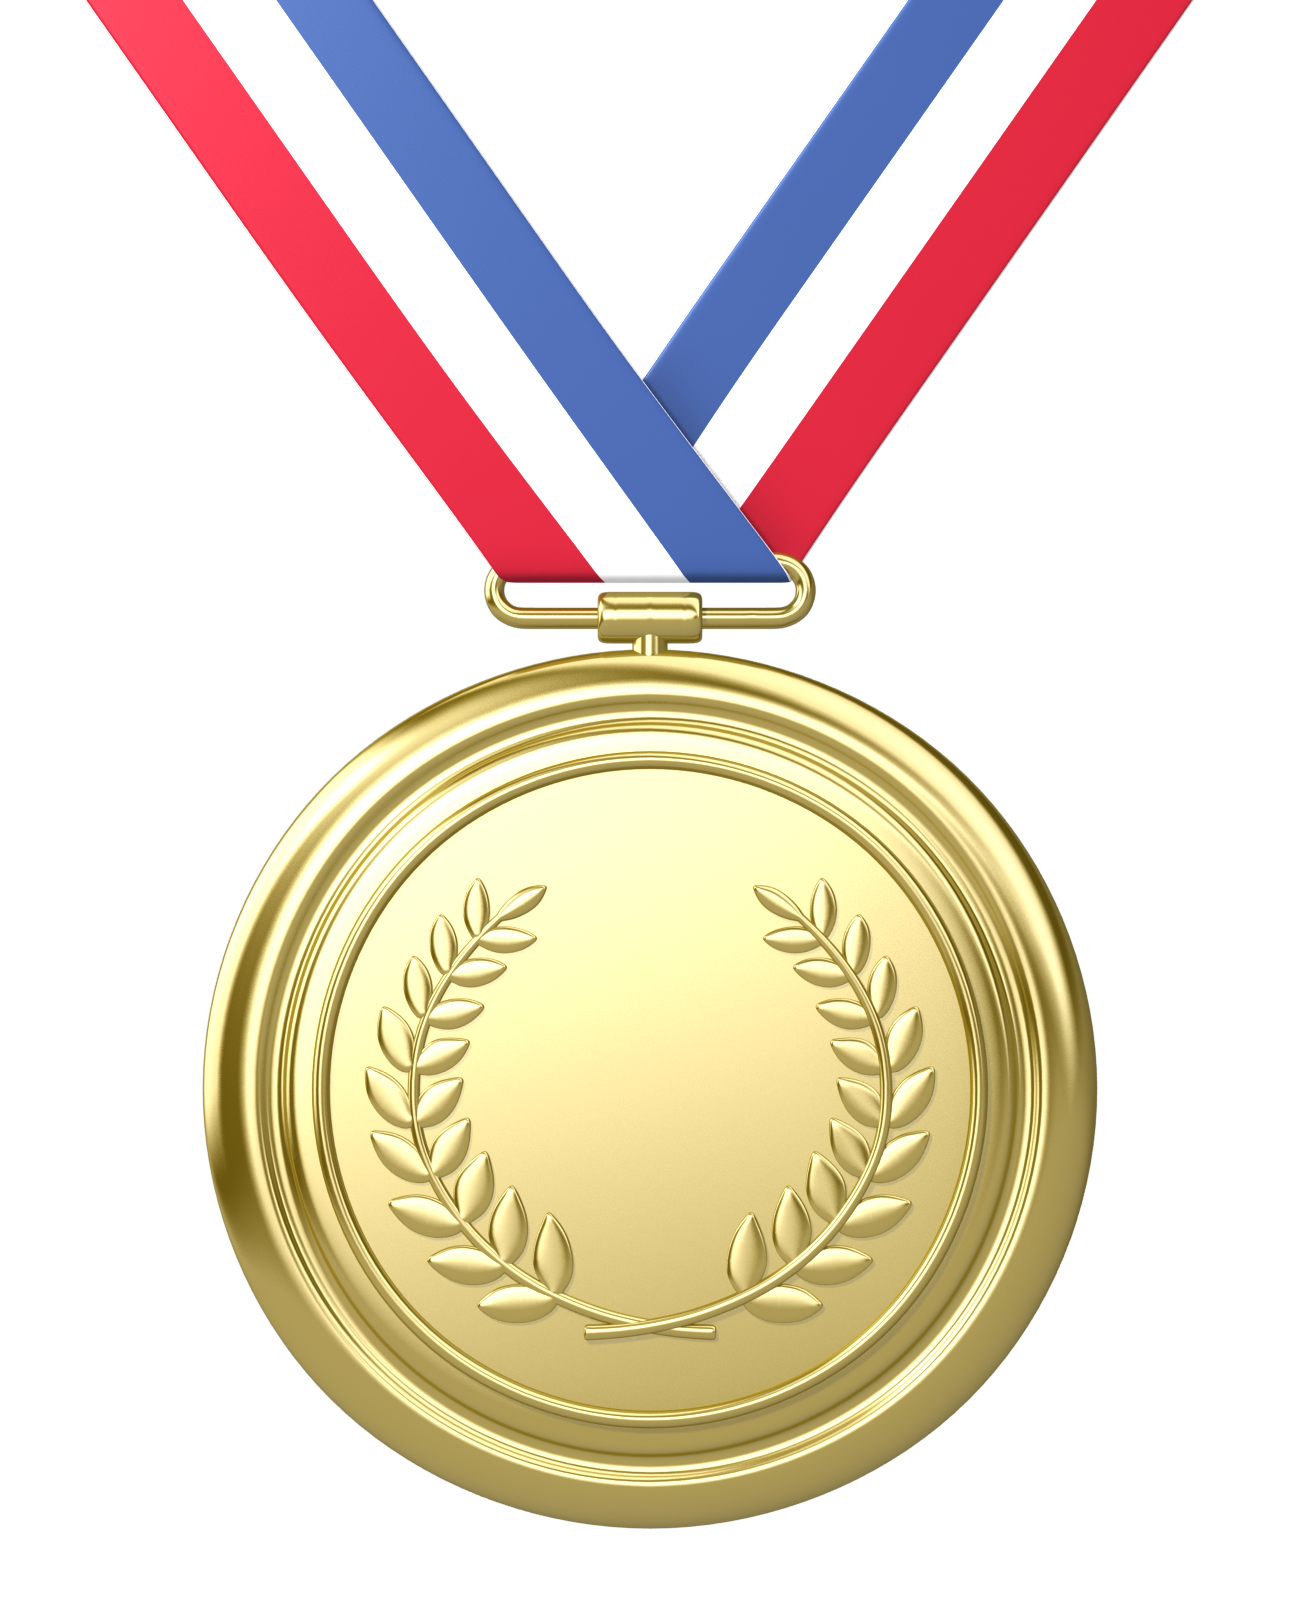 hight resolution of 7 personal gold medal achievements olympic medals volunteer management gold cup ribbon design